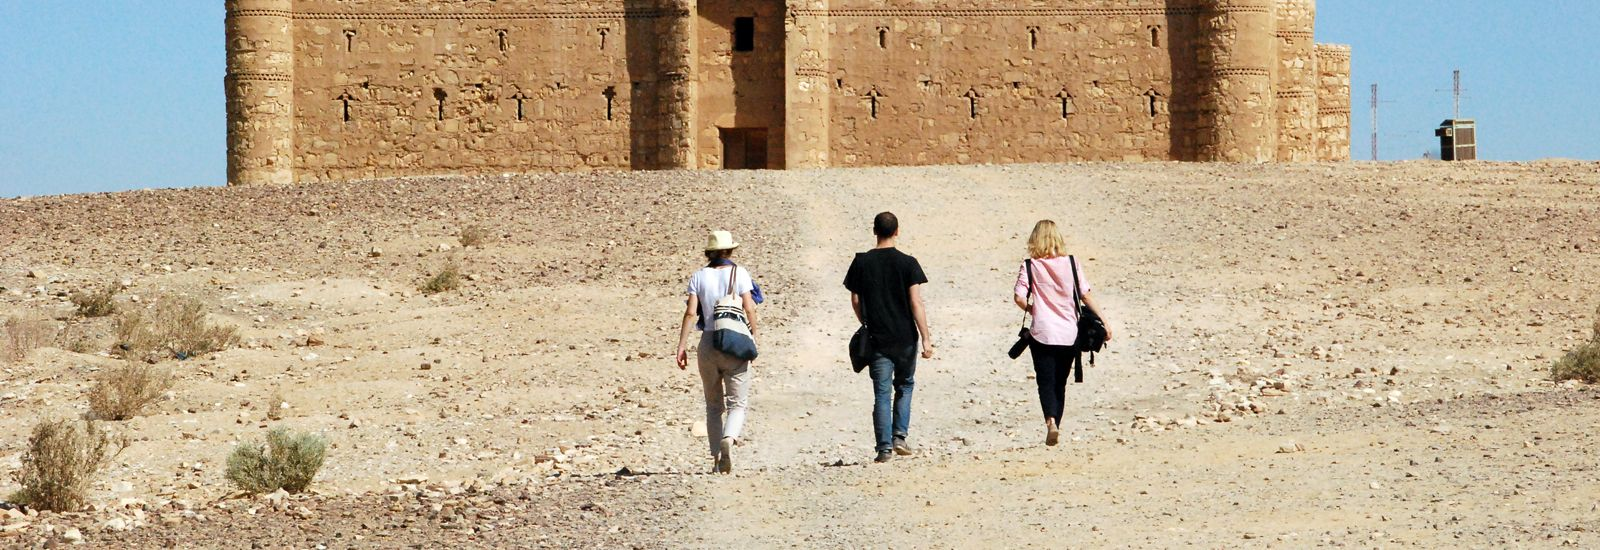 Three people talking toward a building in the desert